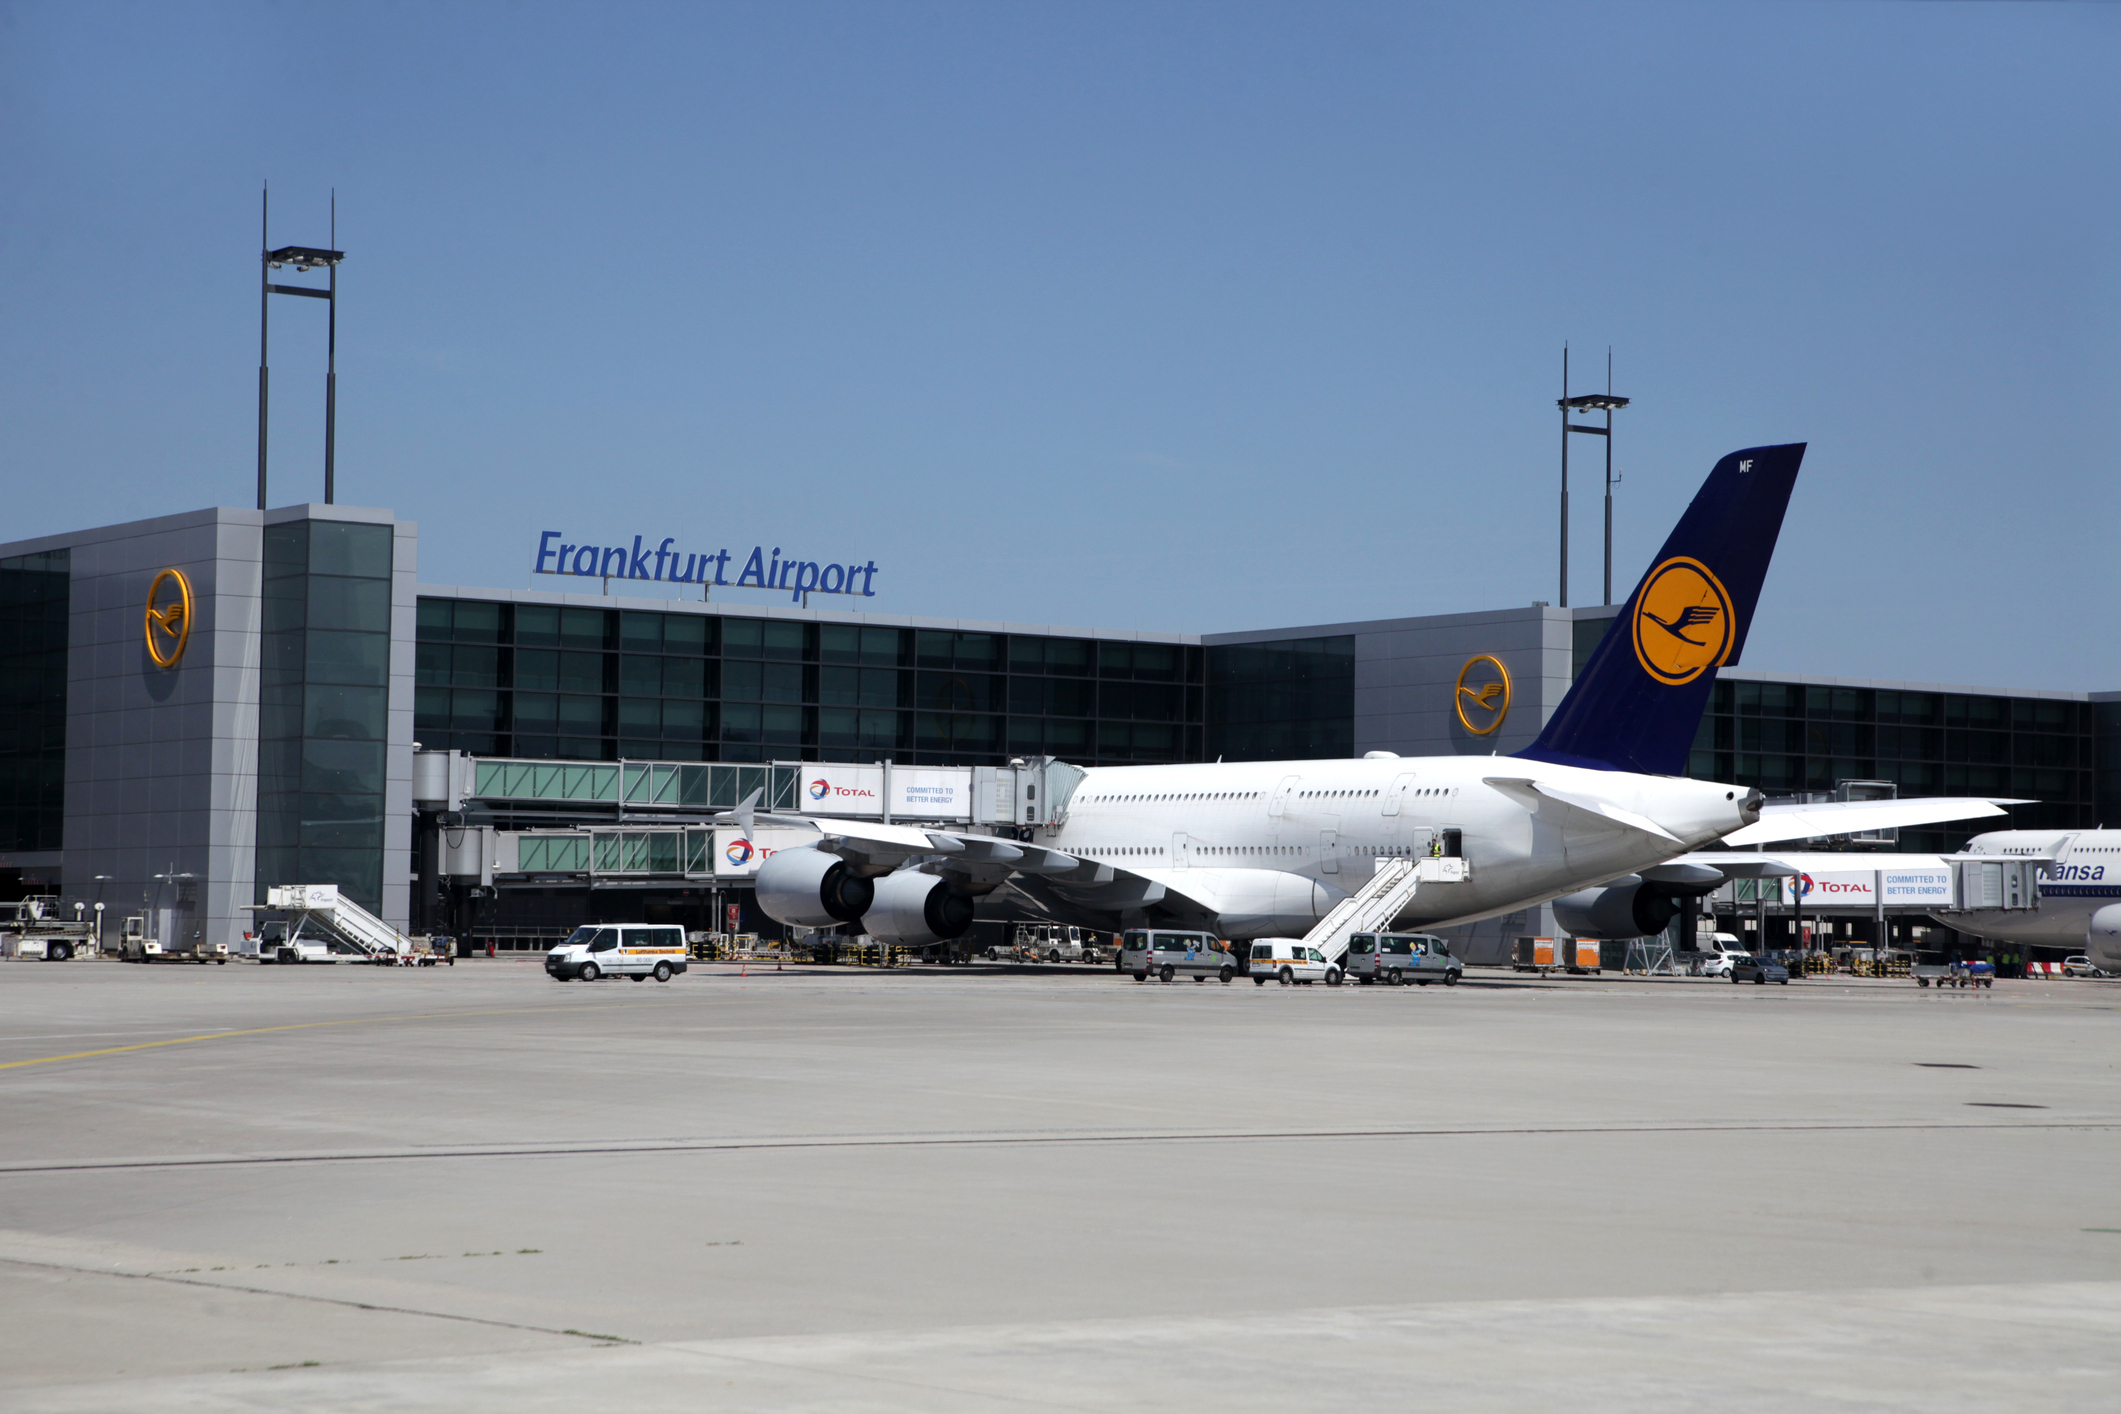 Lufthansa And Frankfurt Airport Charges Dispute Only Partially